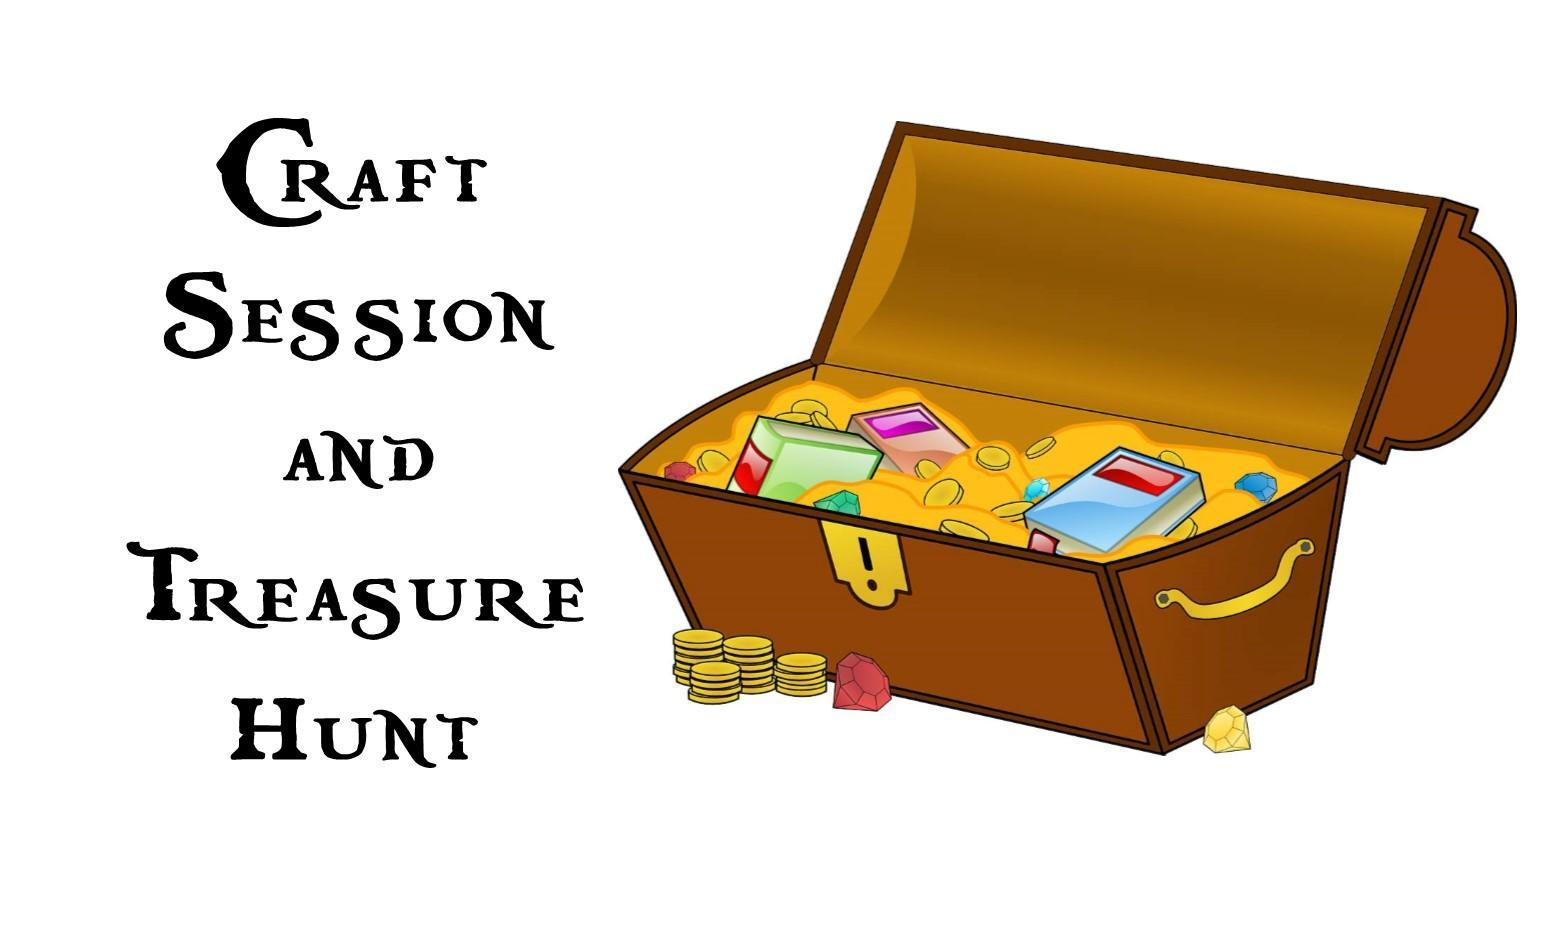 Craft Session and Treasure Hunt at Carmarthen Library